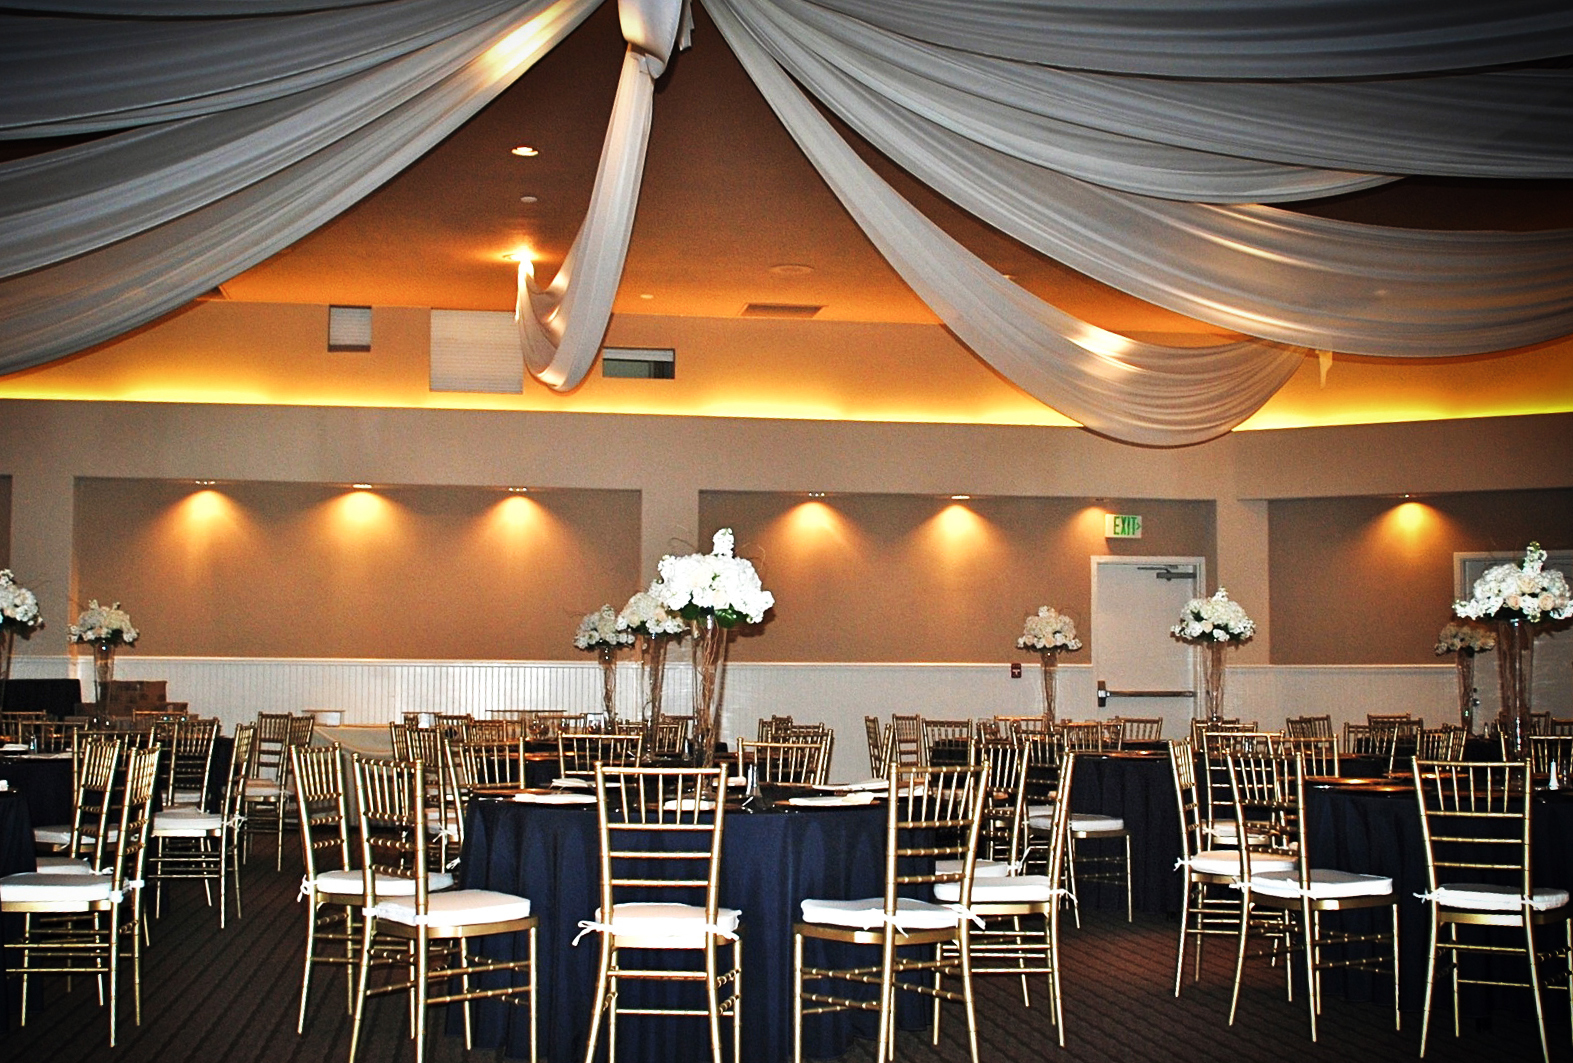 Haz Fabric Draping Above Chiavari Chairs